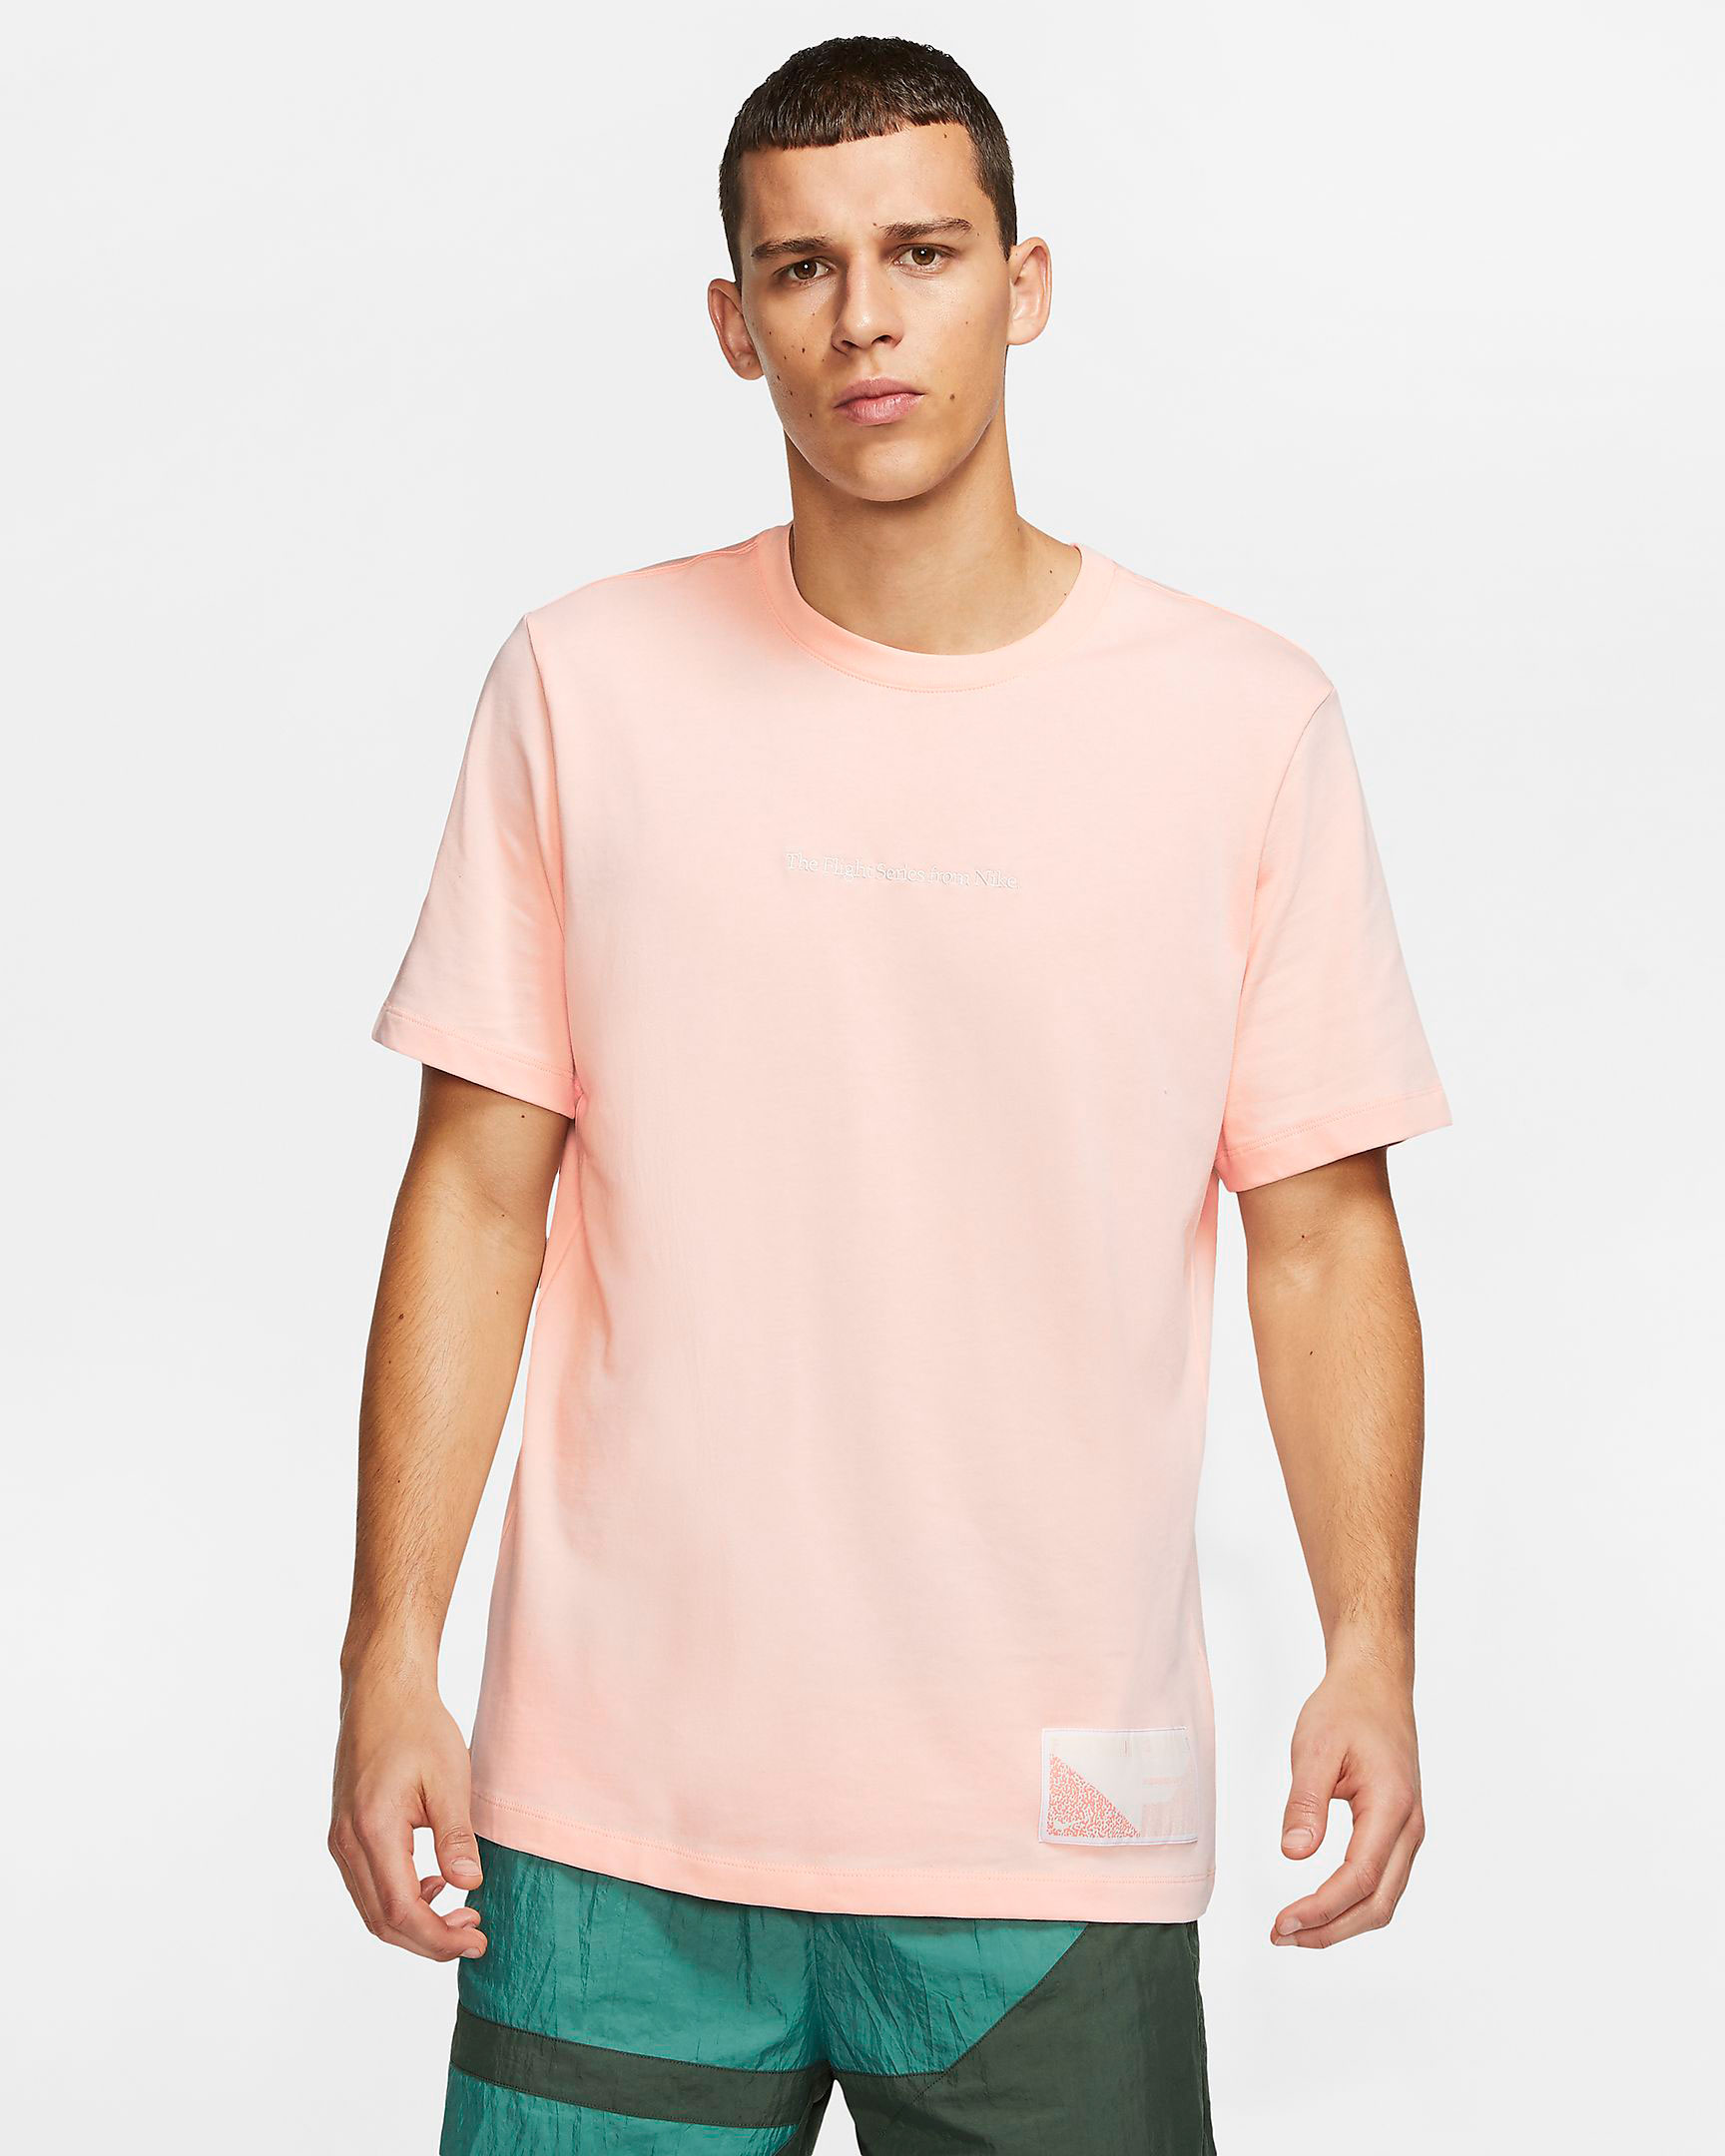 nike-kd-12-aunt-pearl-tee-shirt-match-1